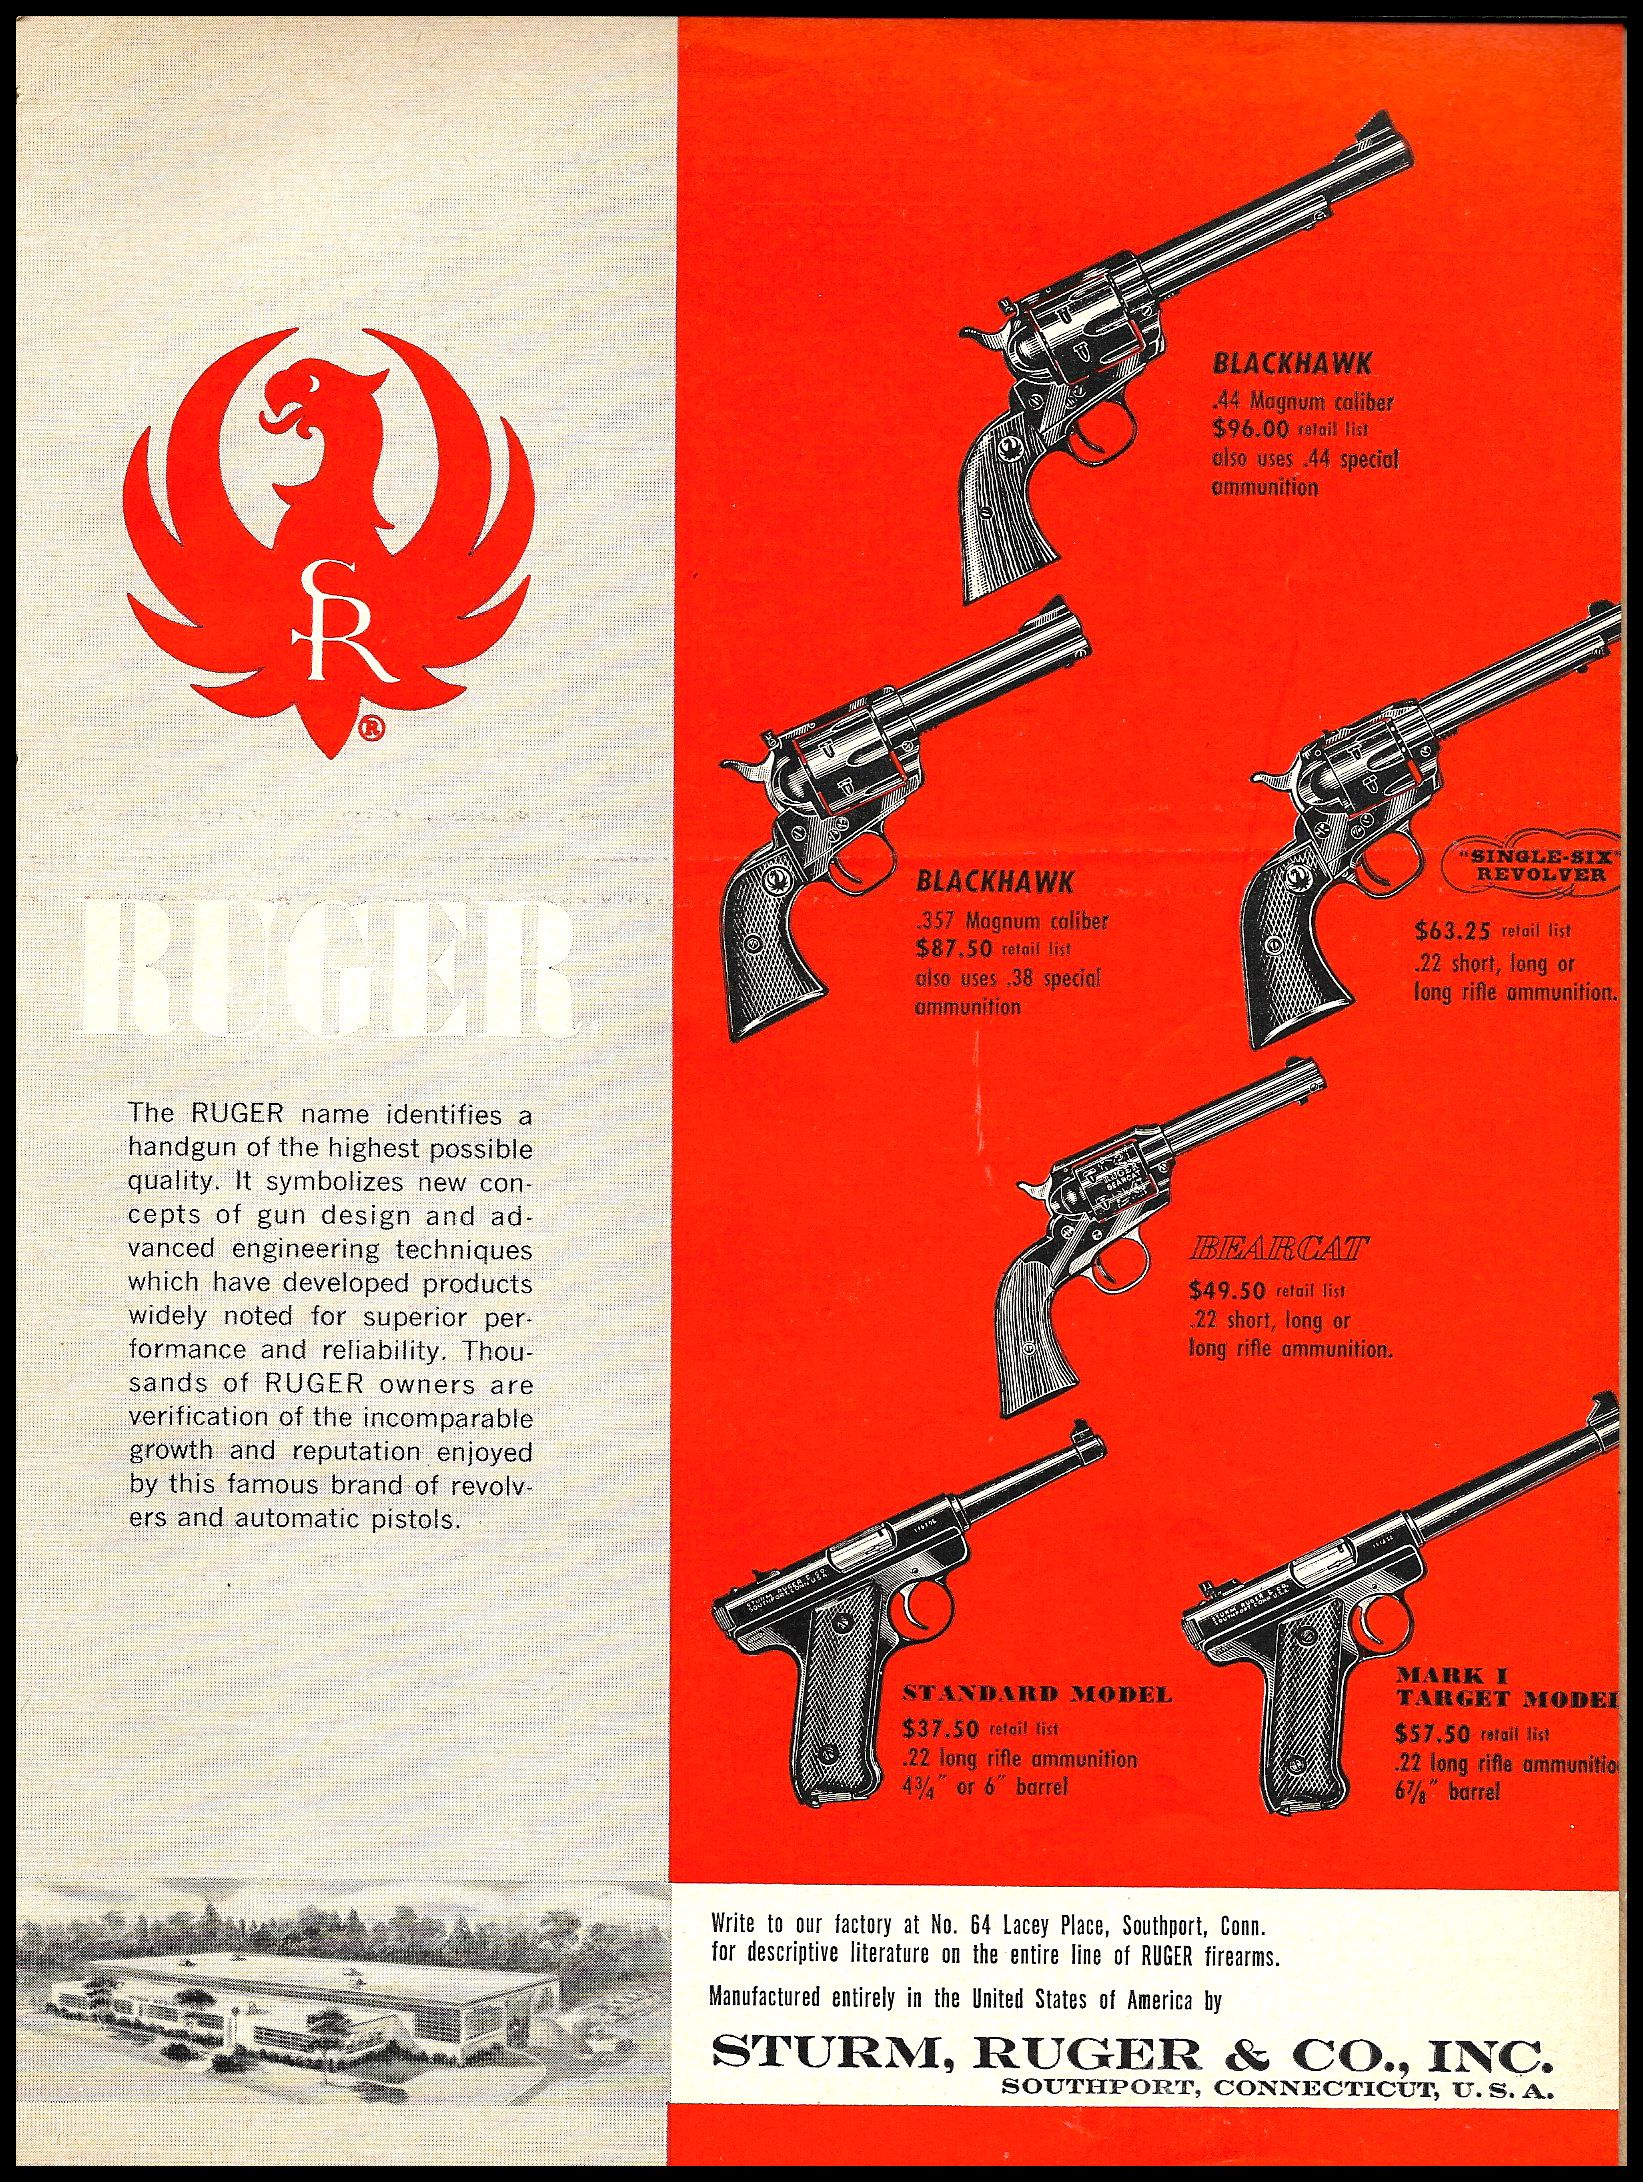 1958 RUGER Blackhawk Revolver & Pistol Line AD : Other Collectibles at GunBroker.com